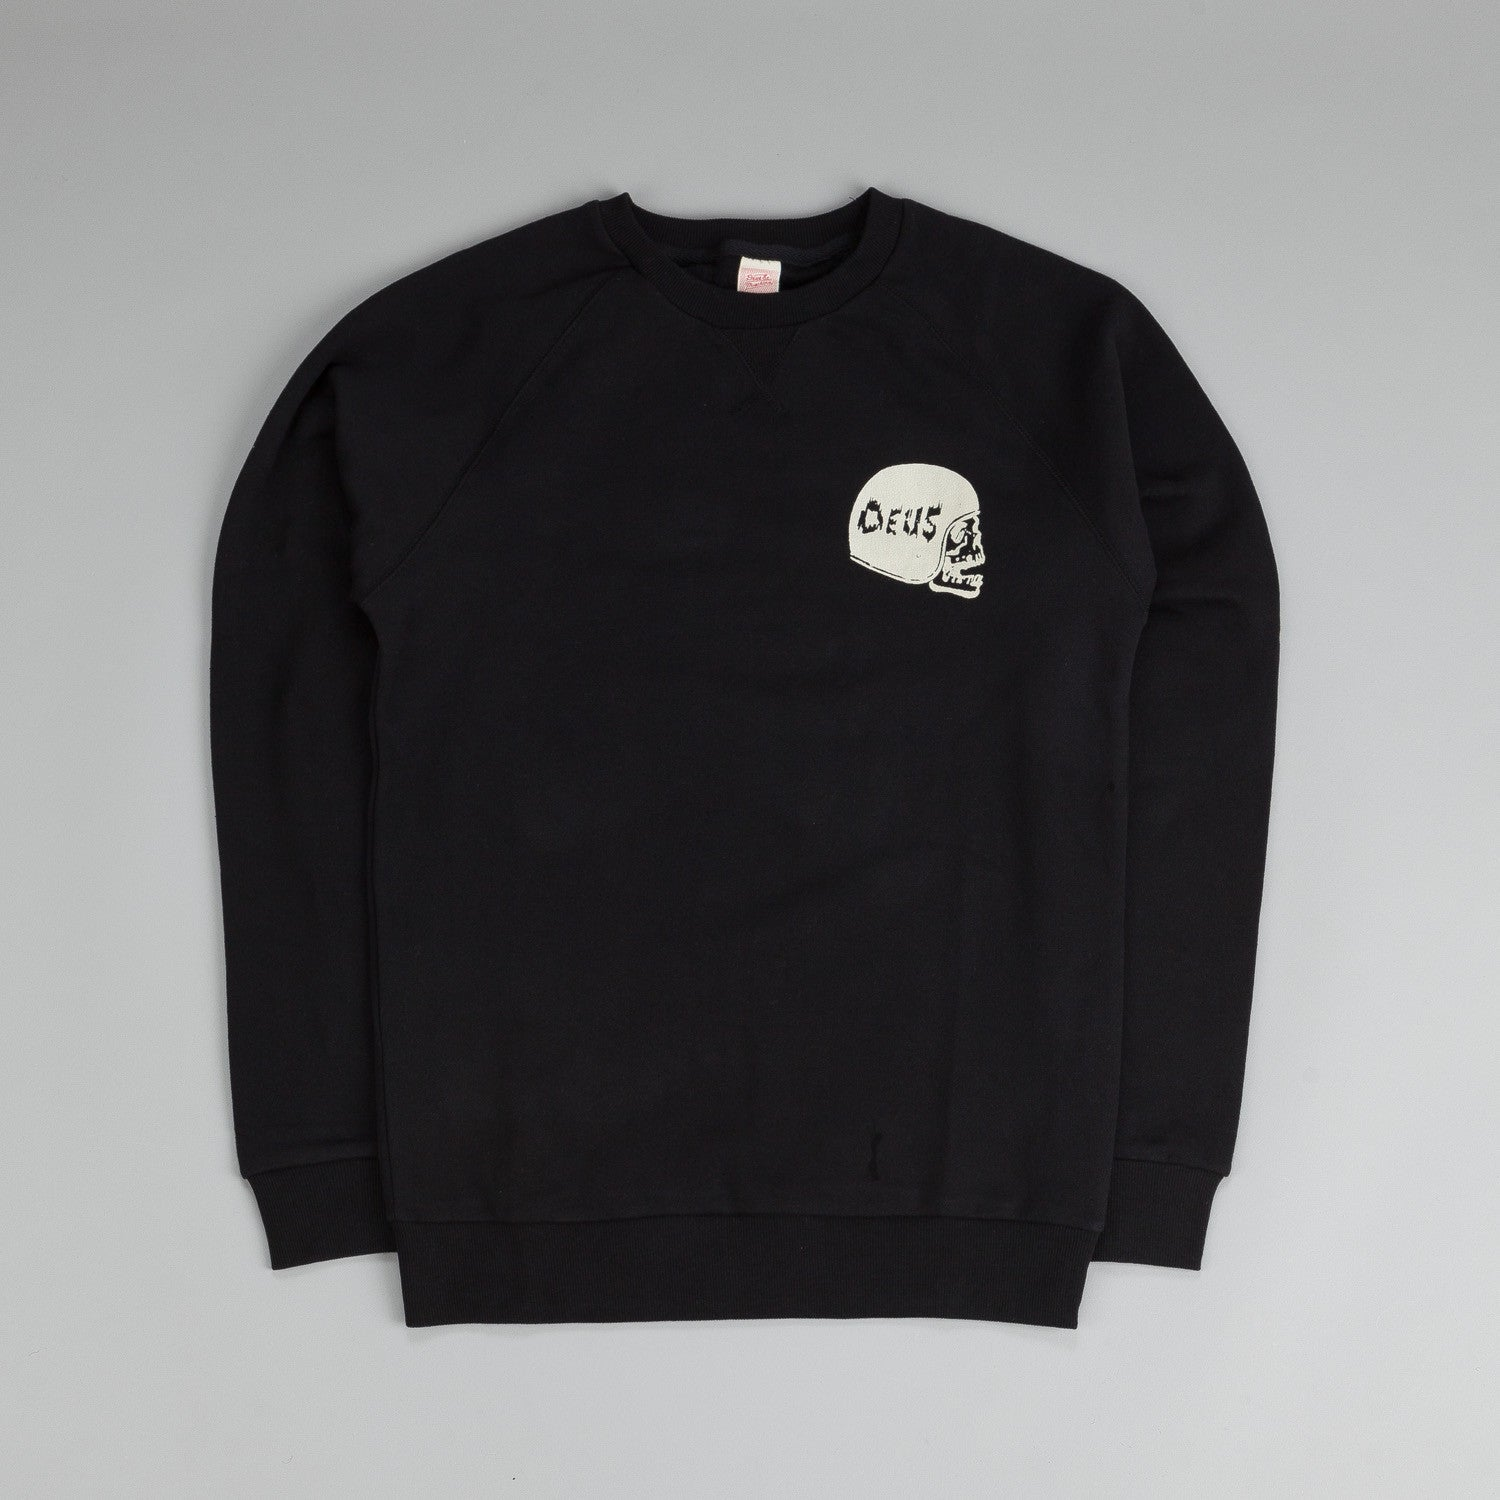 Deus Ex Machina Camperdown Skull Crew Neck Sweatshirt Black